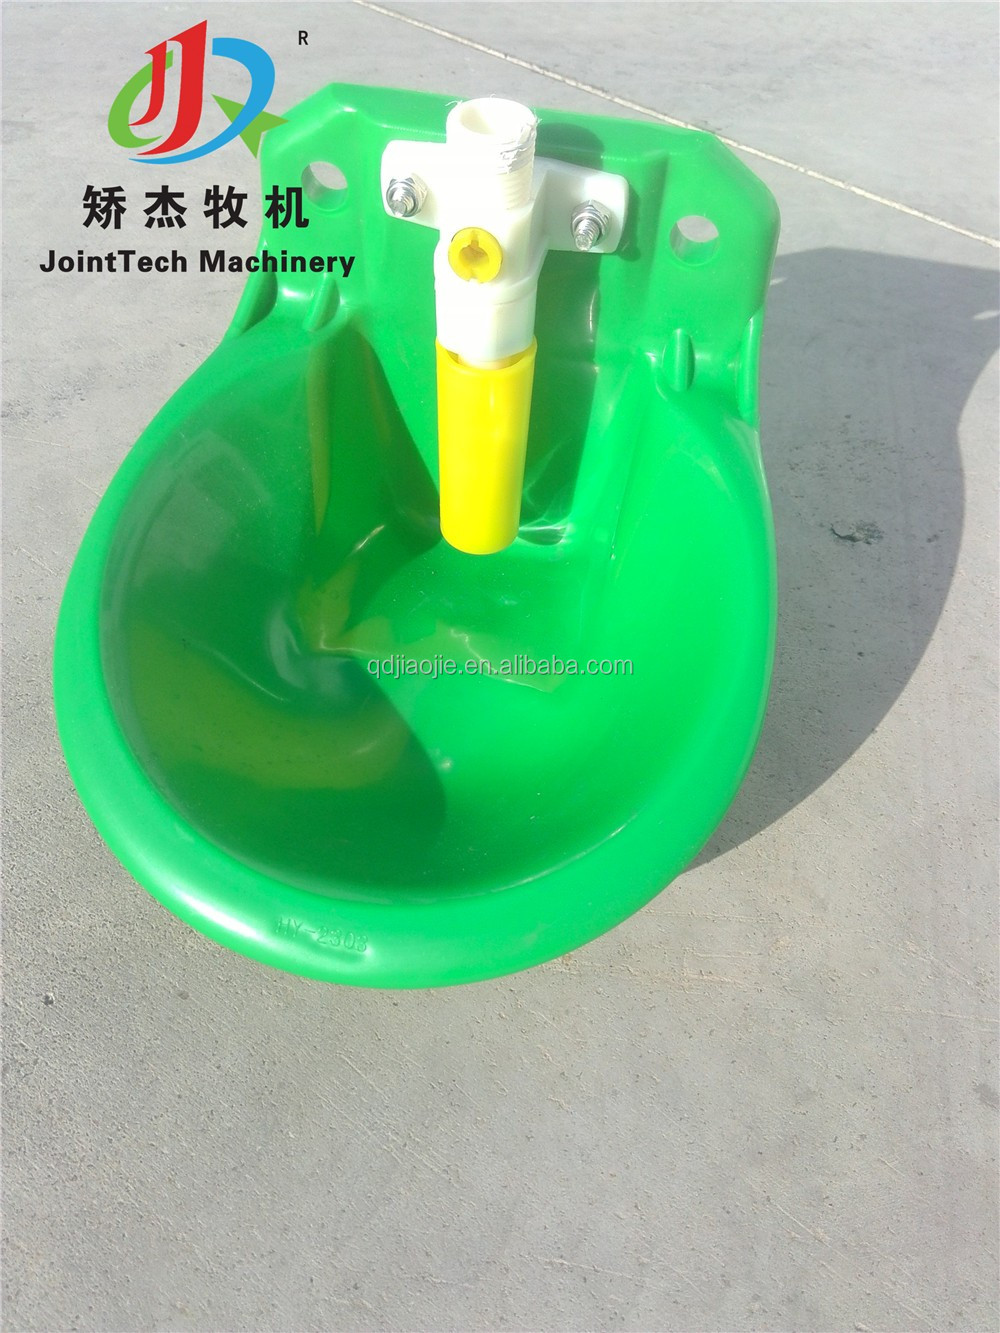 Customized Sheep Drinking Water Trough for sale!